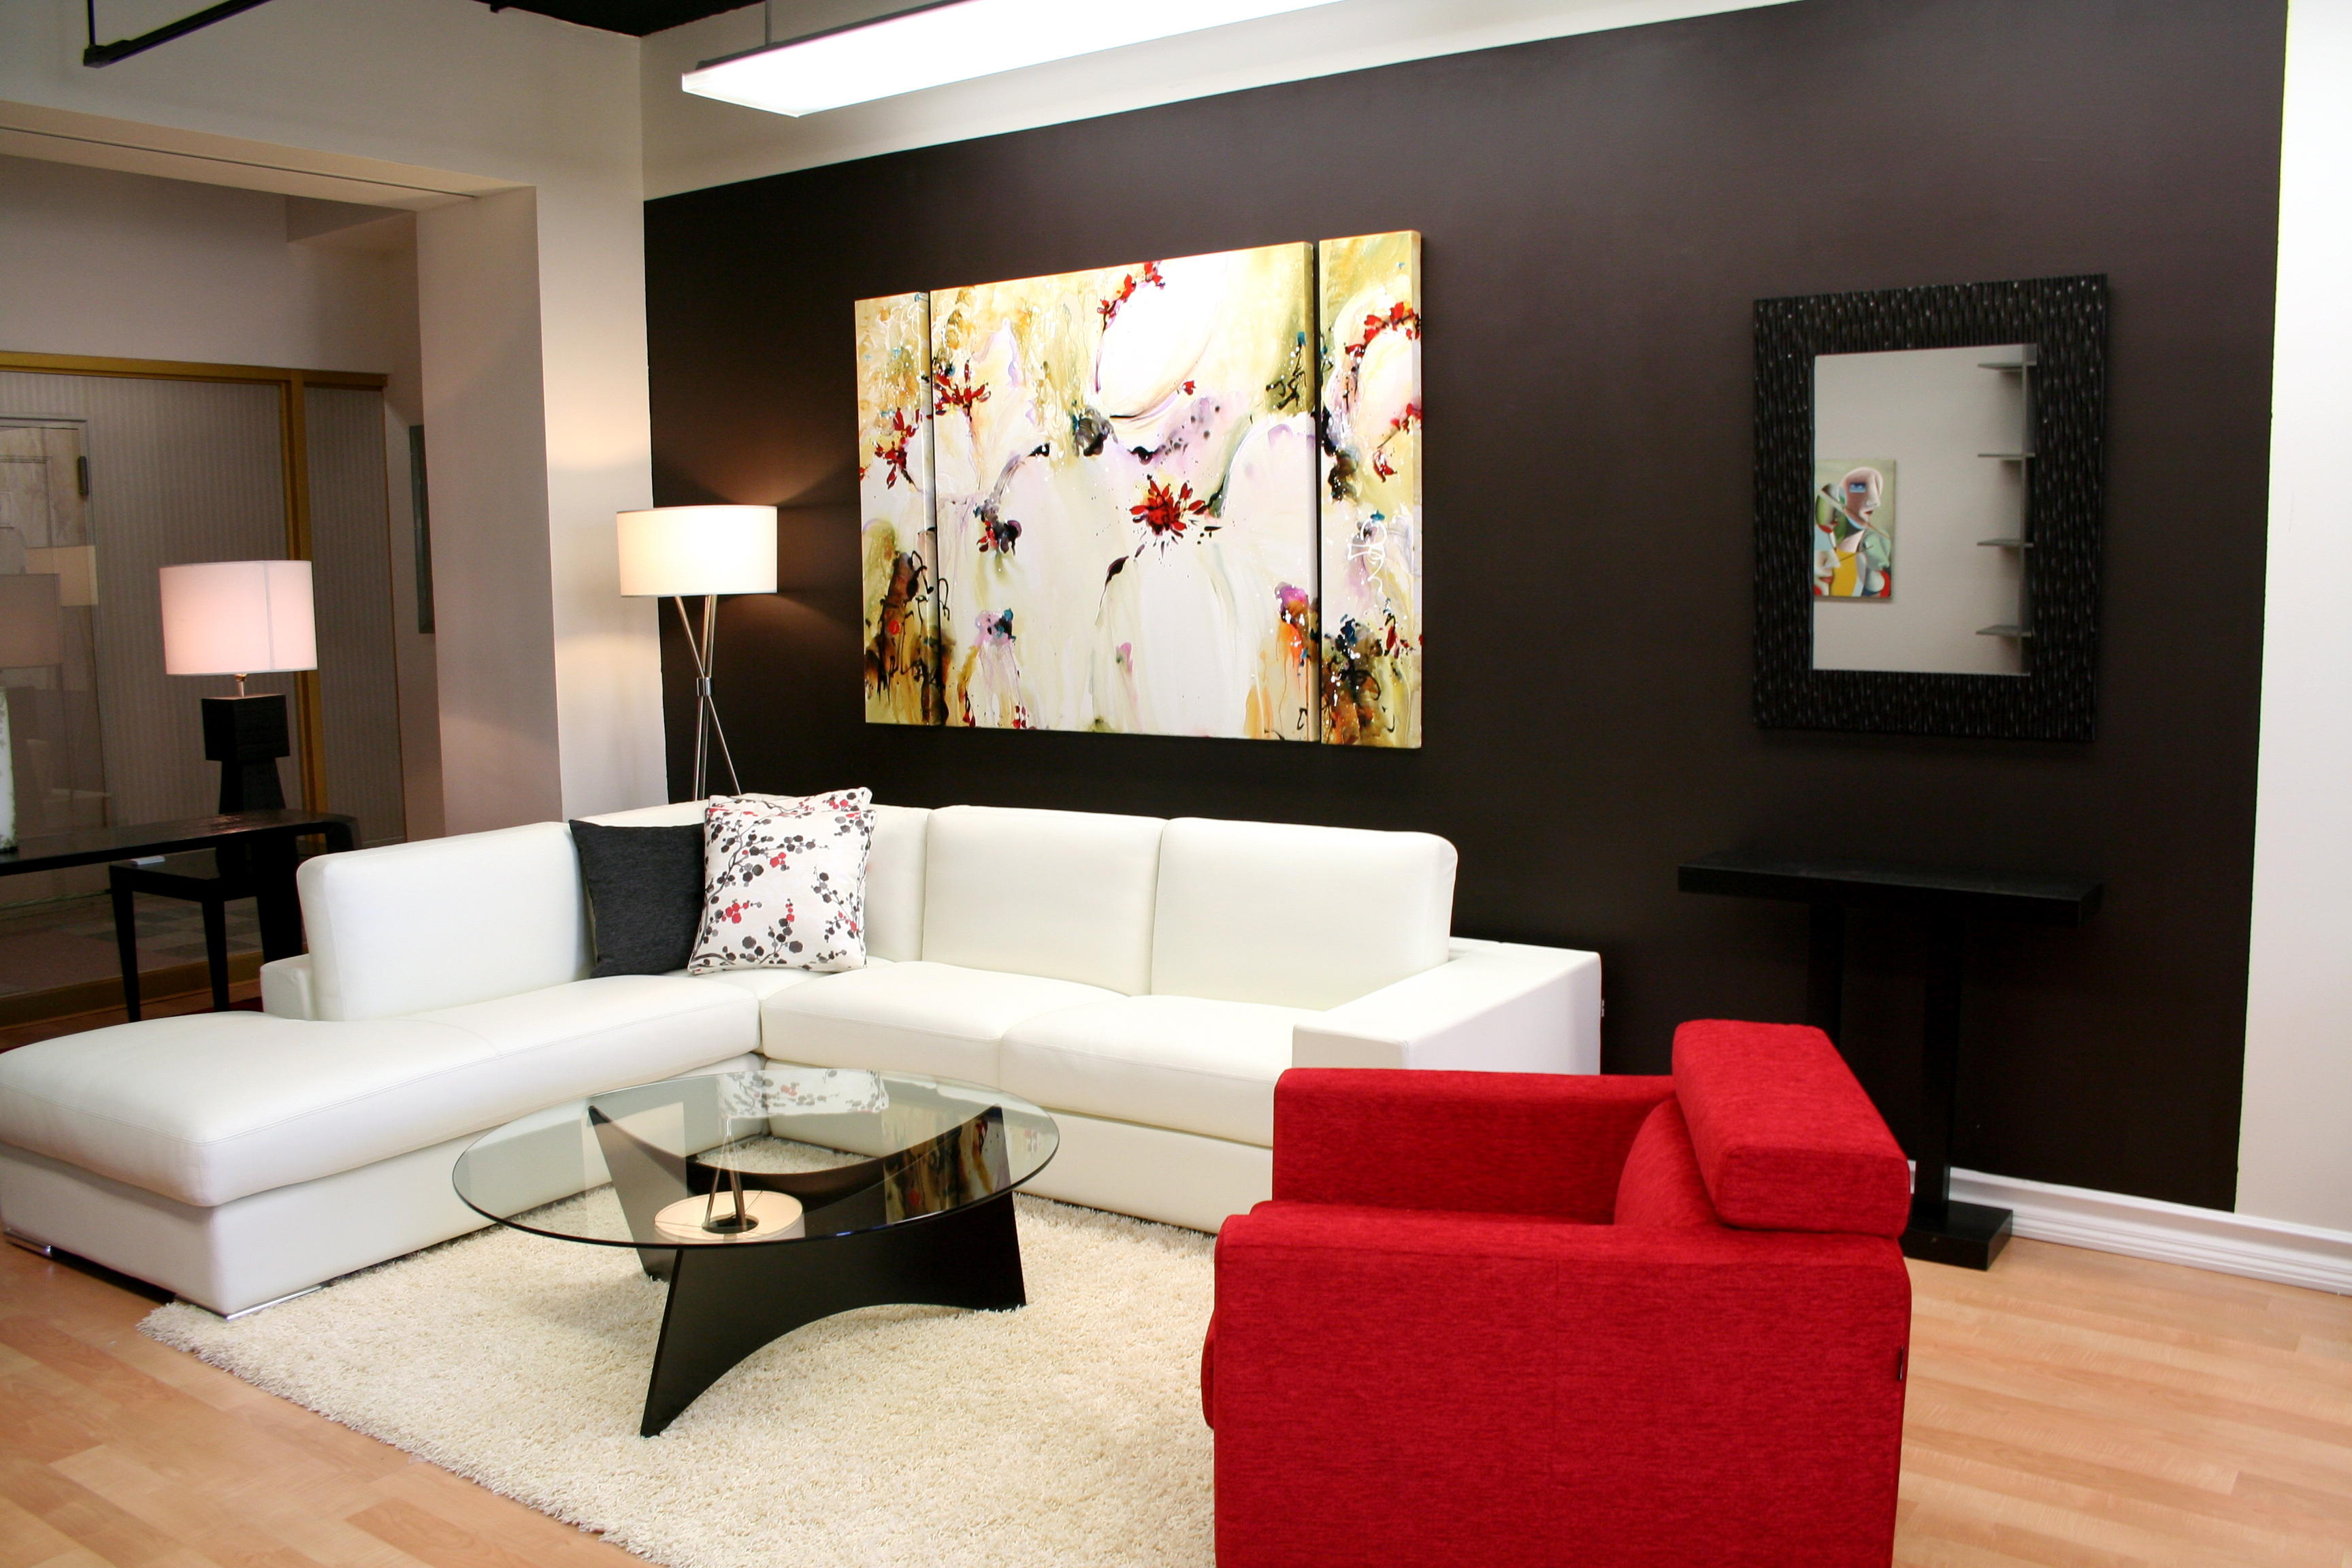 Brown and cream living room, with white corner sofa and red armchair